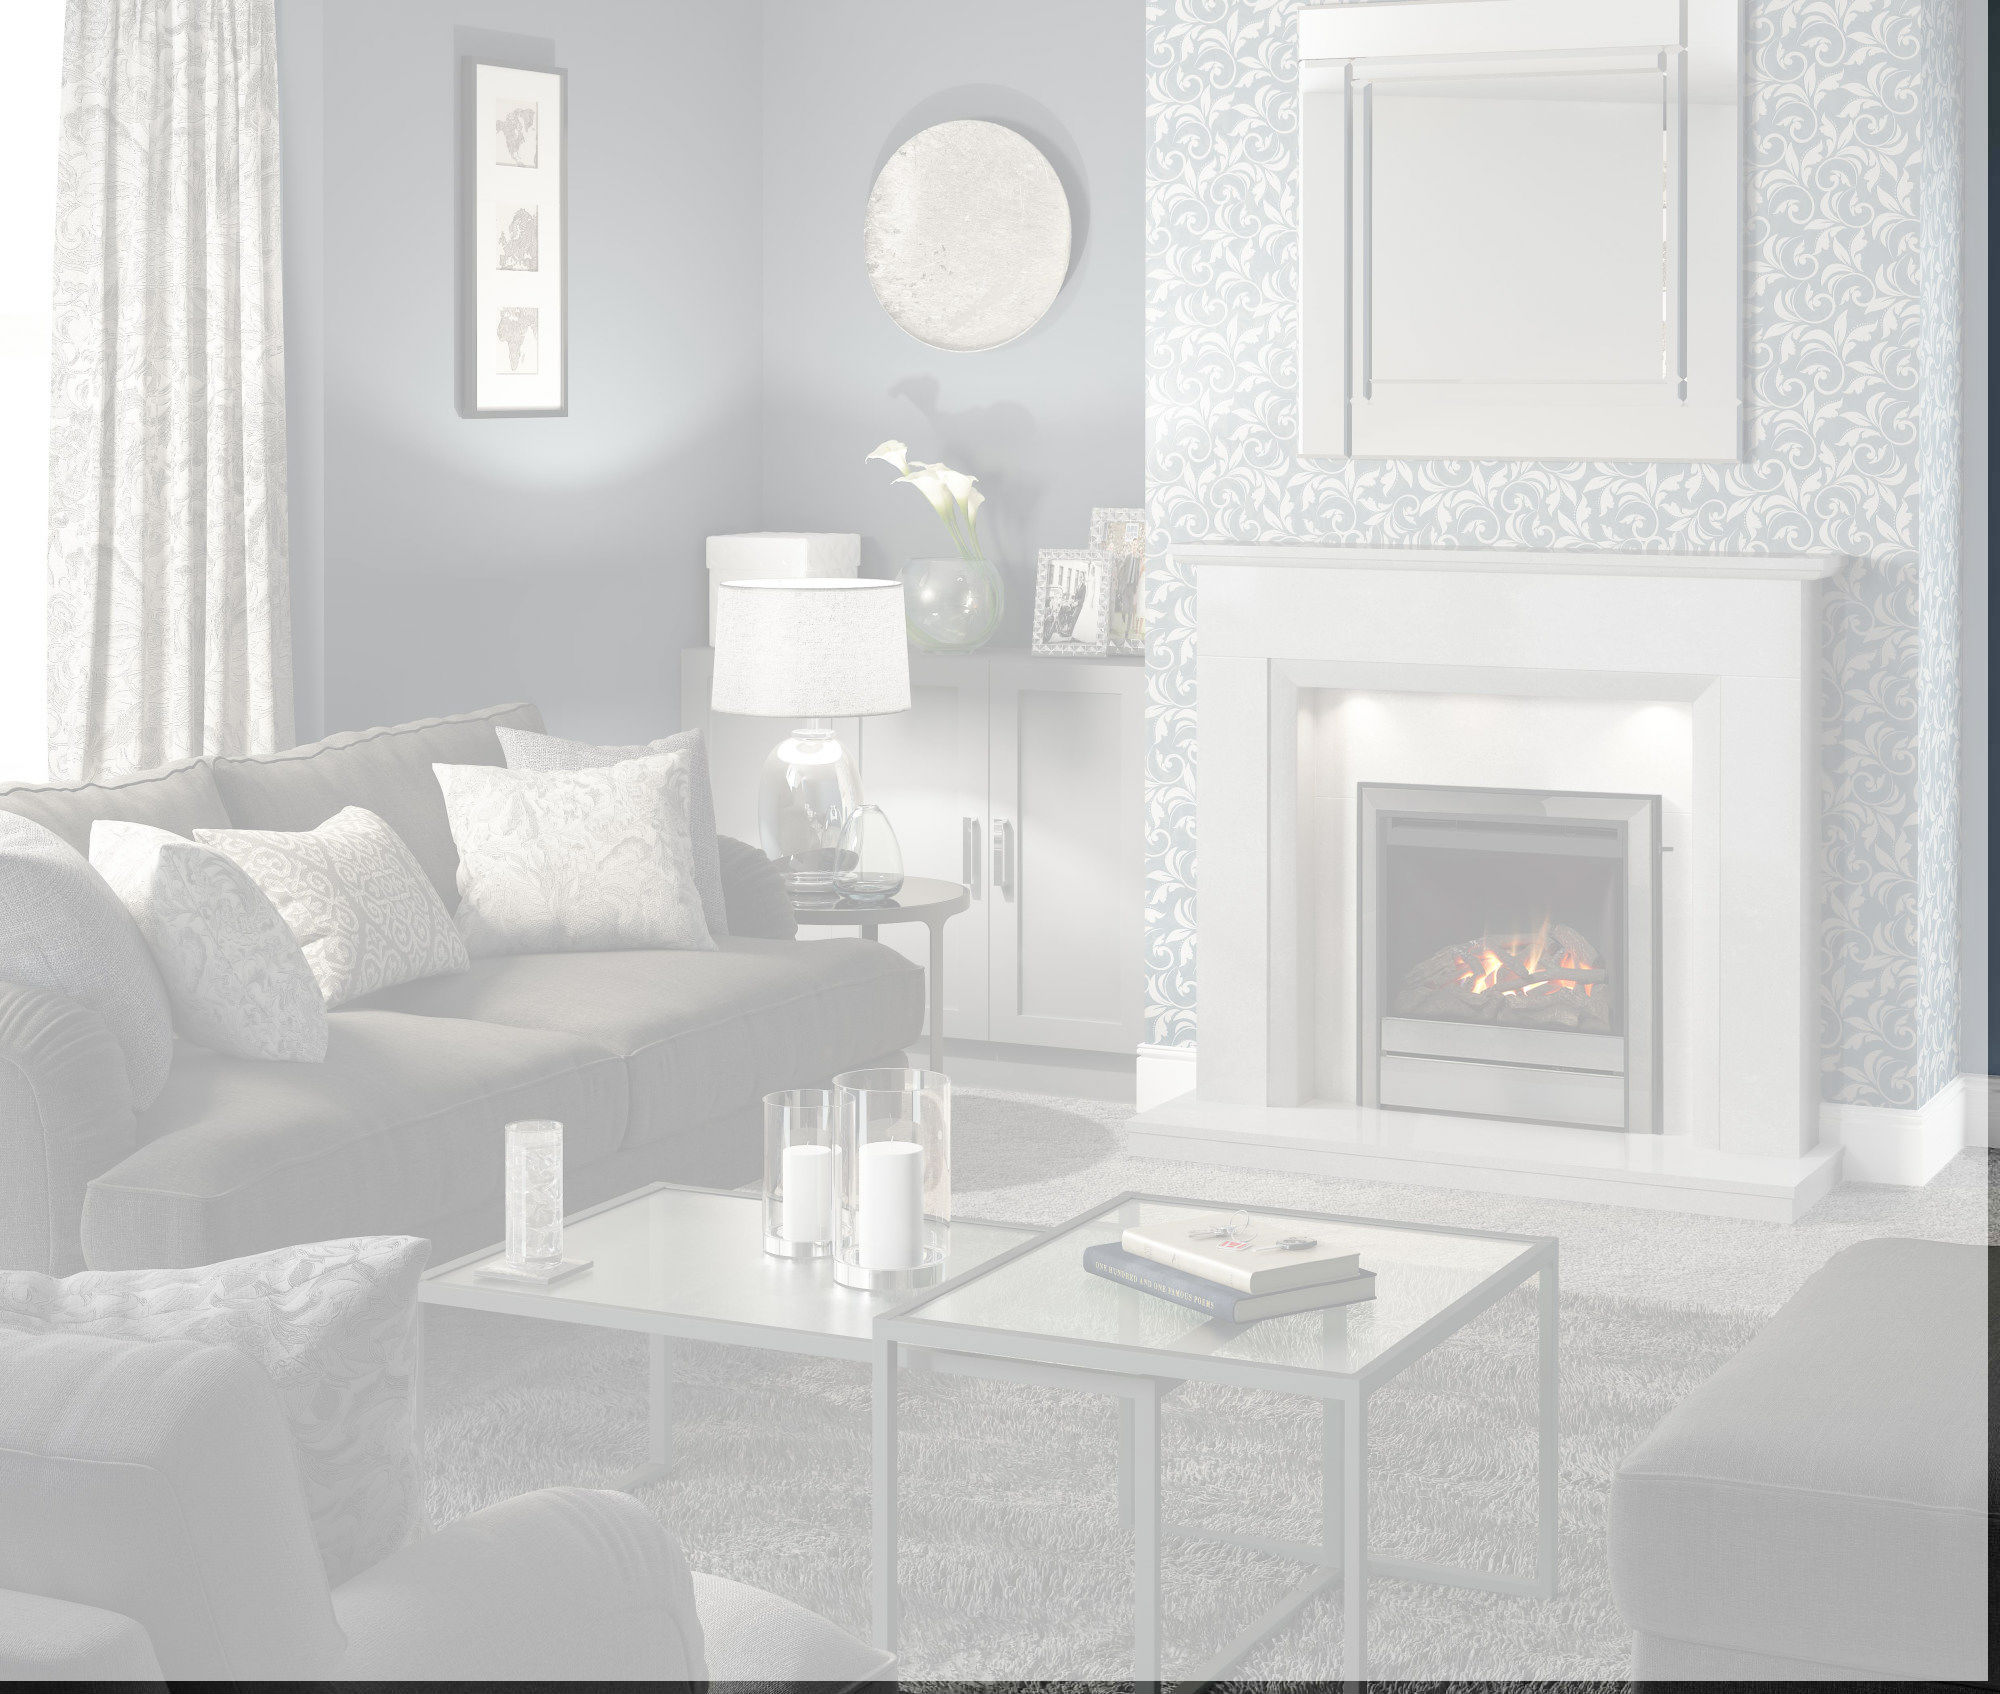 FIREPLACE SHOWROOMS KEIGHLEY